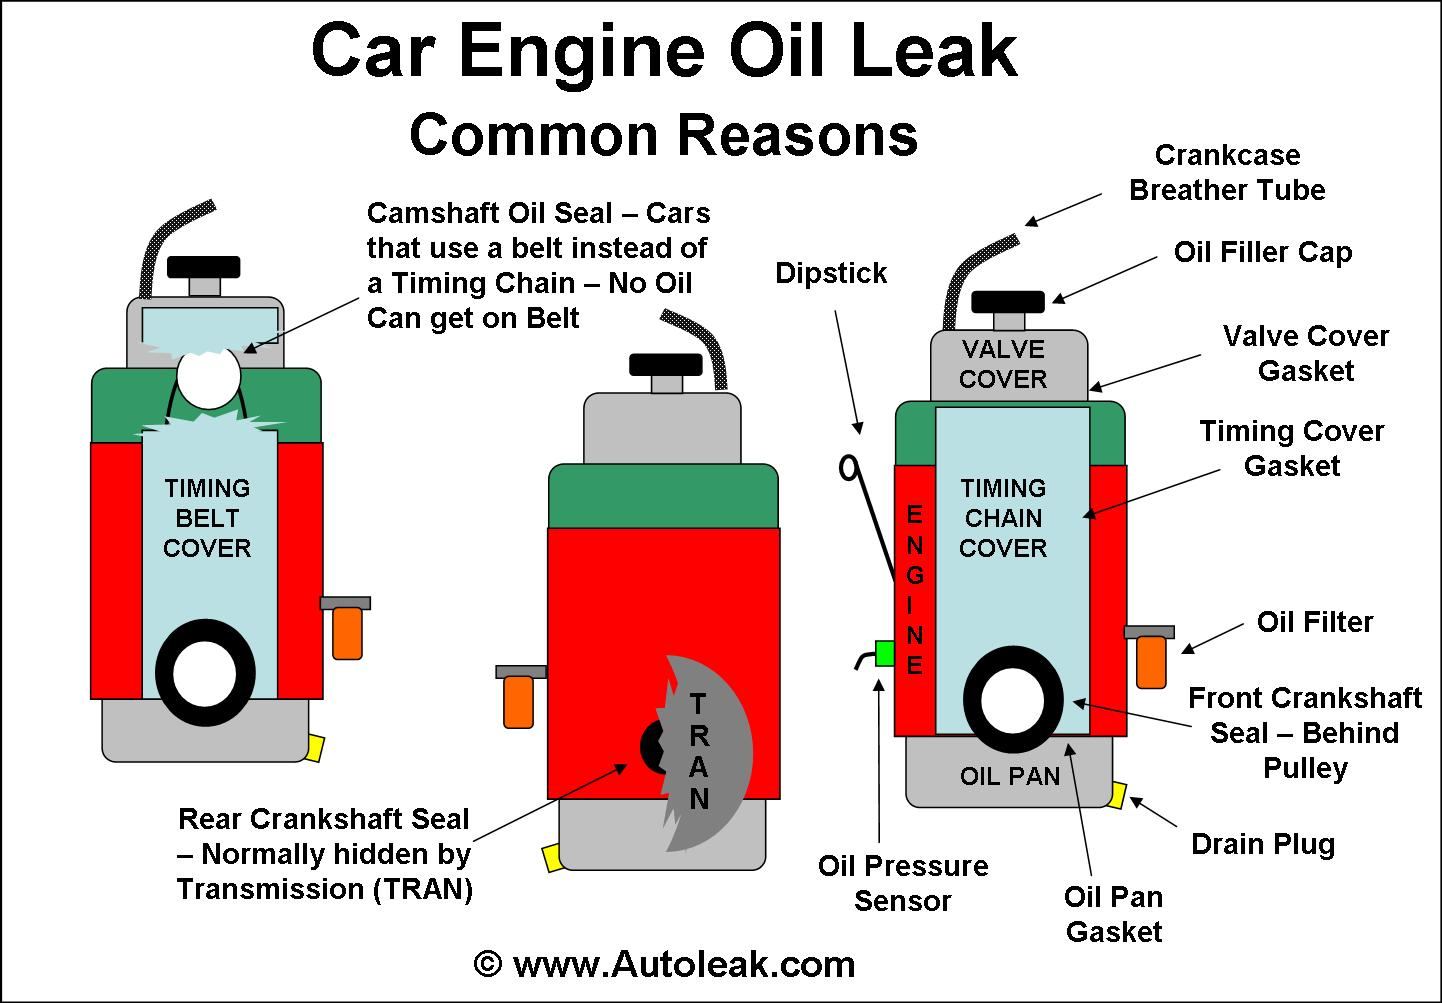 How To Fix An Oil Leak In Car